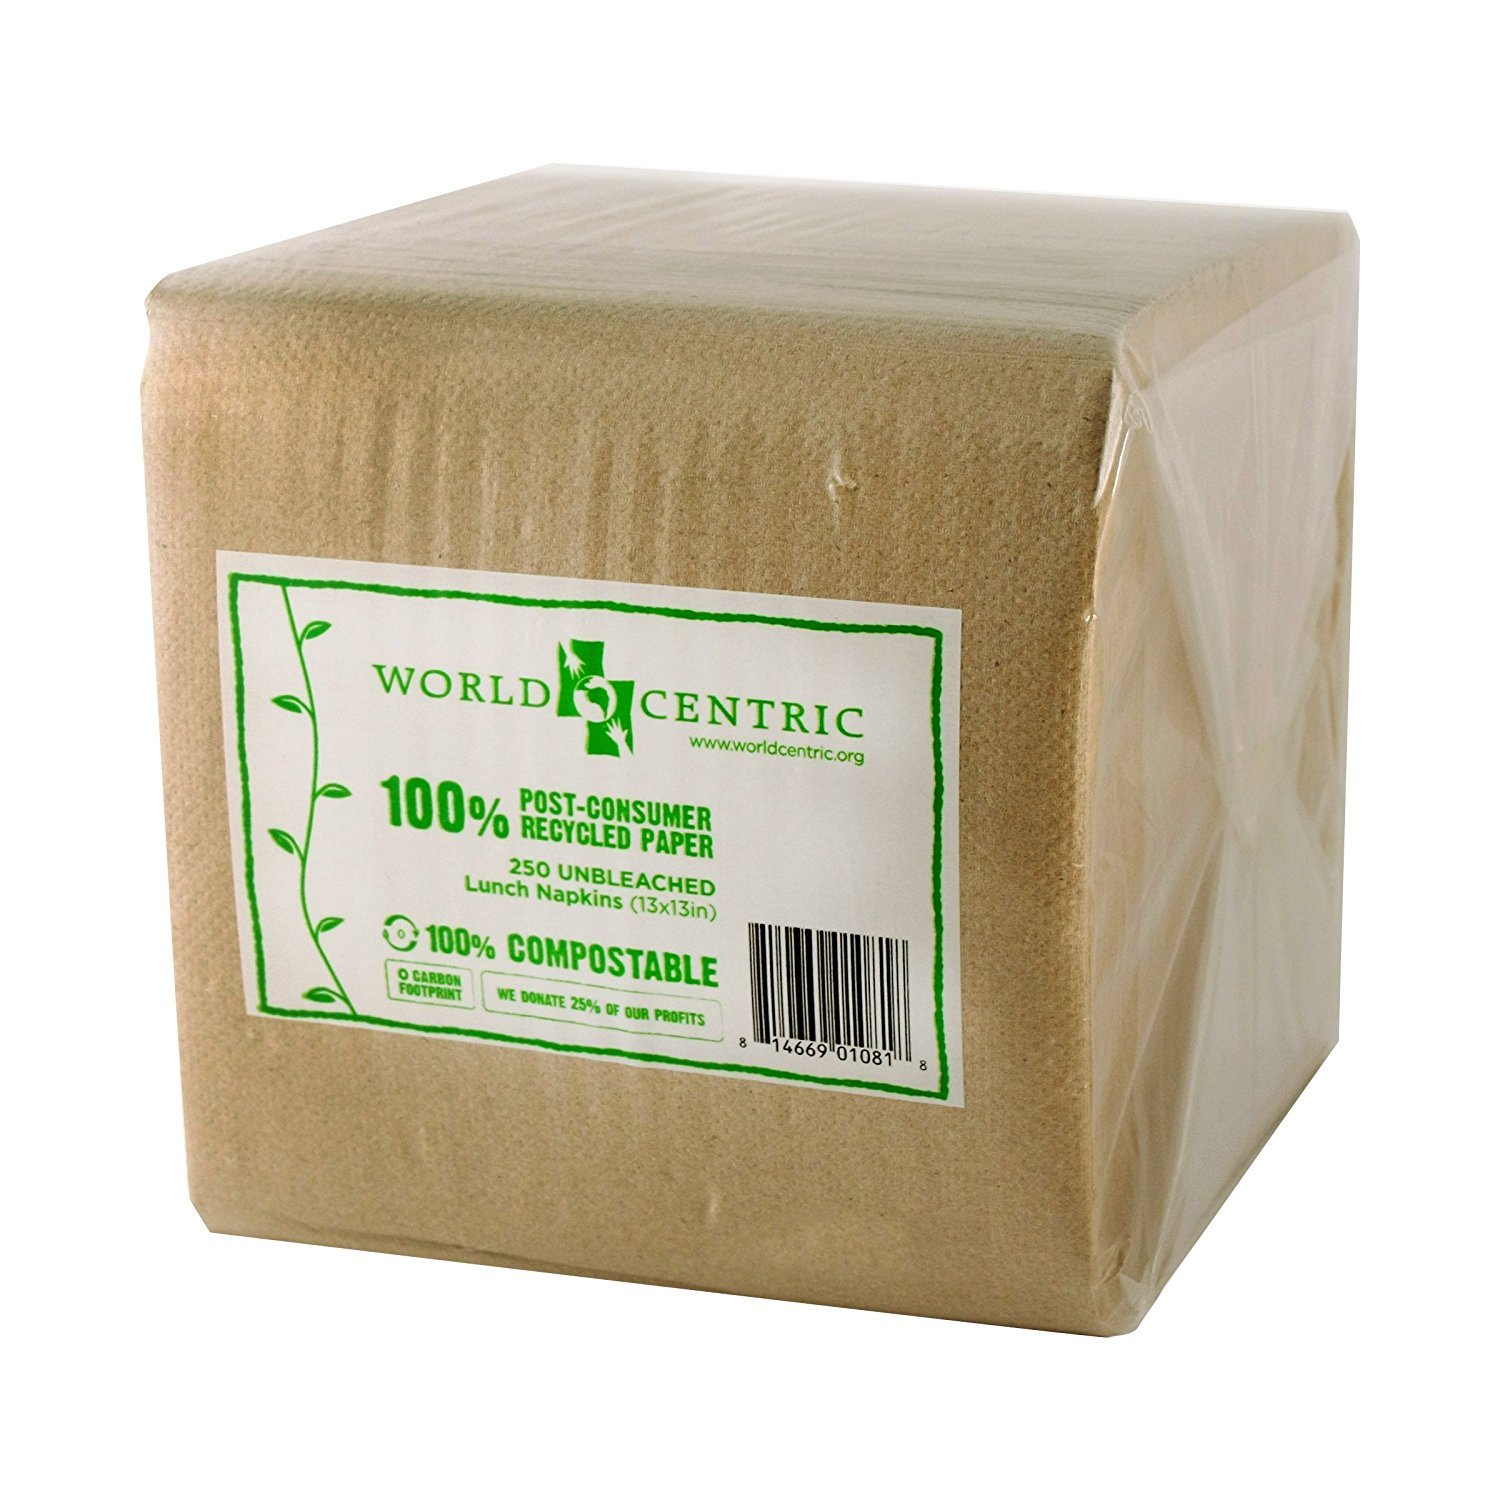 World Centric 100% Post-Consumer Recycled Paper Unbleached Lunch Napkins 250 count